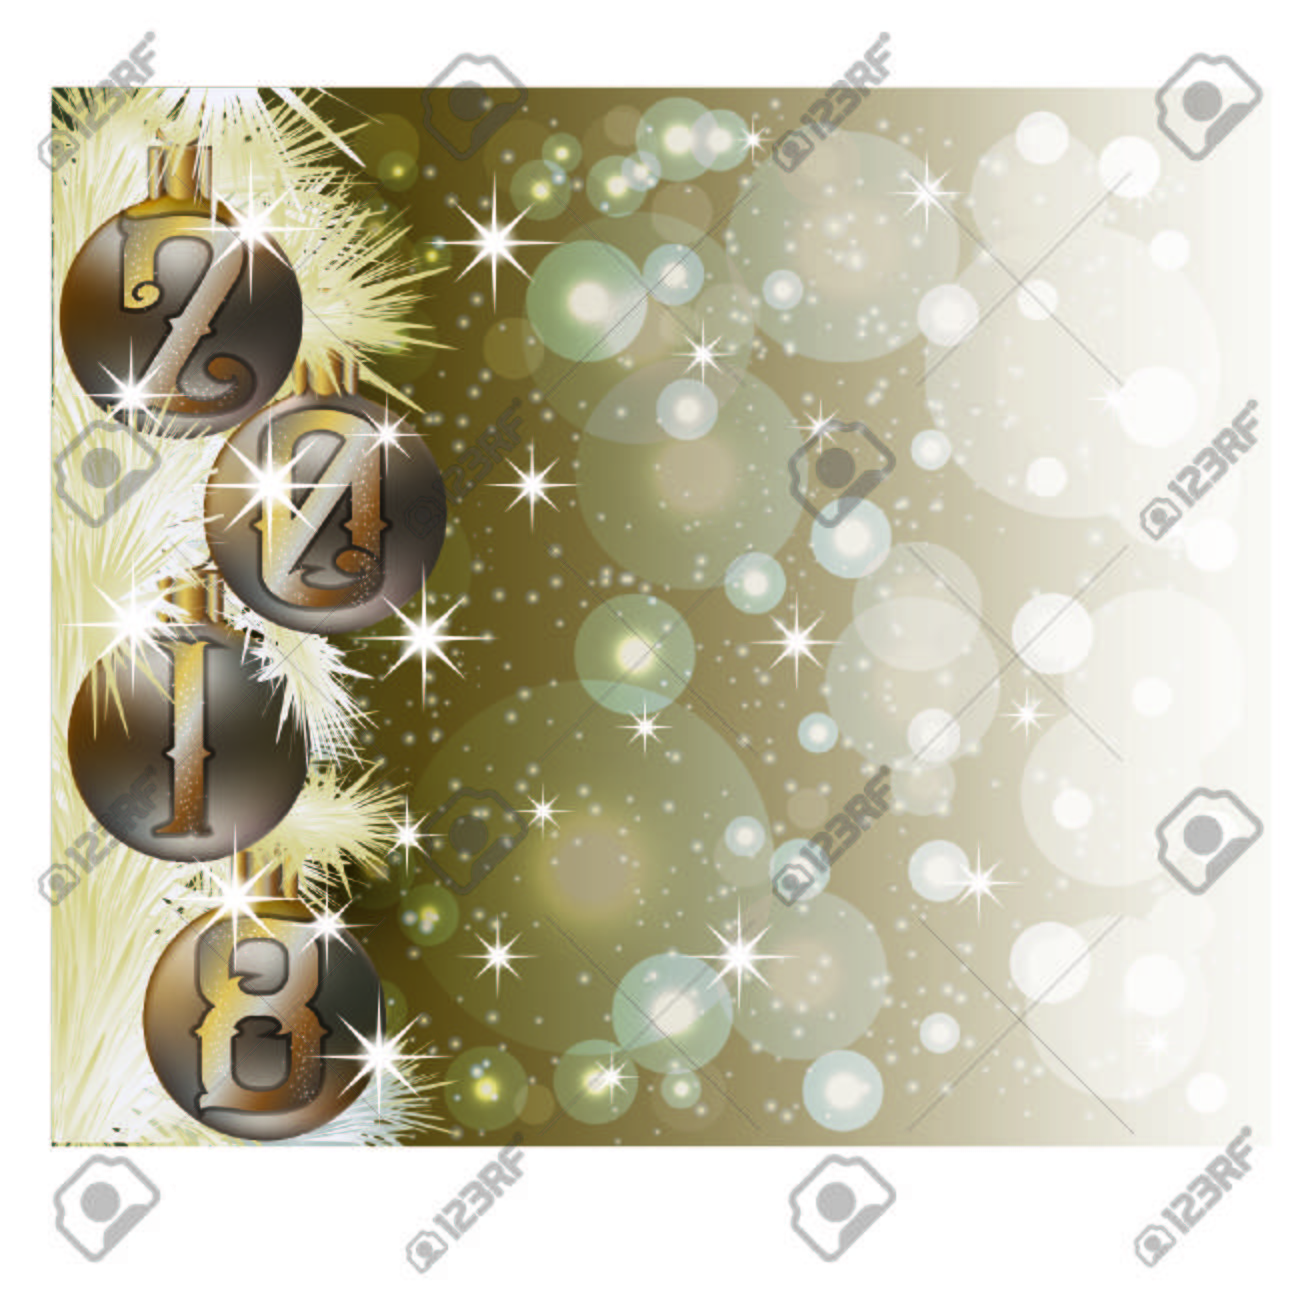 merry christmas and happy 2018 new year invitation card vector illustration stock vector 89018738